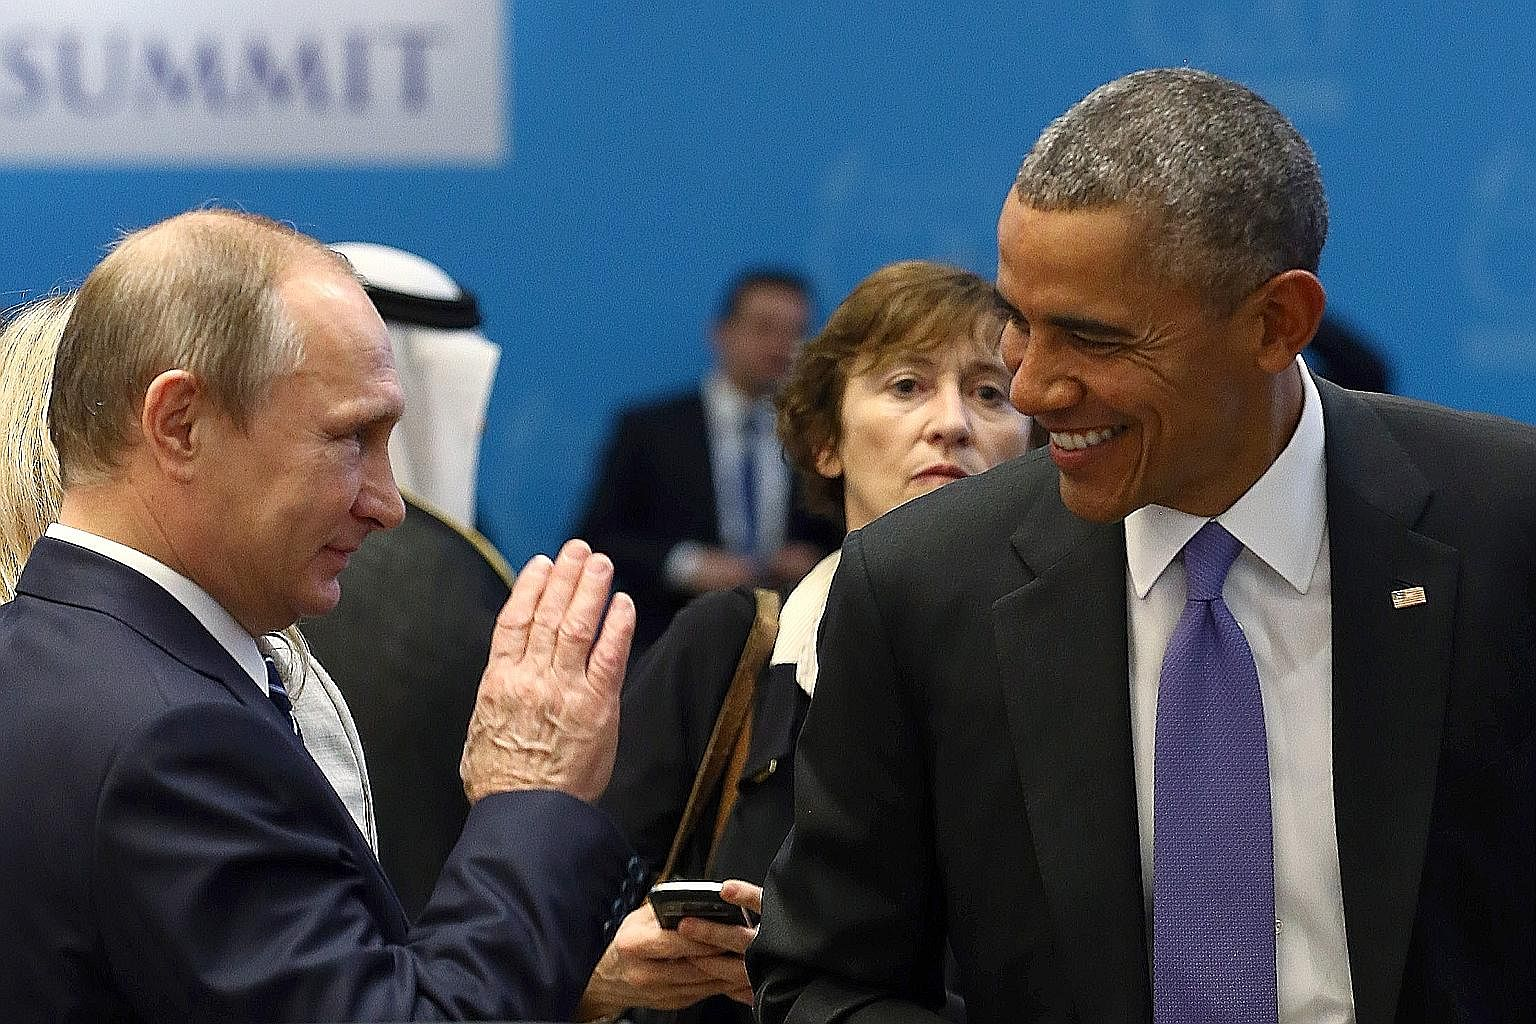 Mr Vladimir Putin (left) and Mr Barack Obama could find a middle ground in the Syrian conflict.